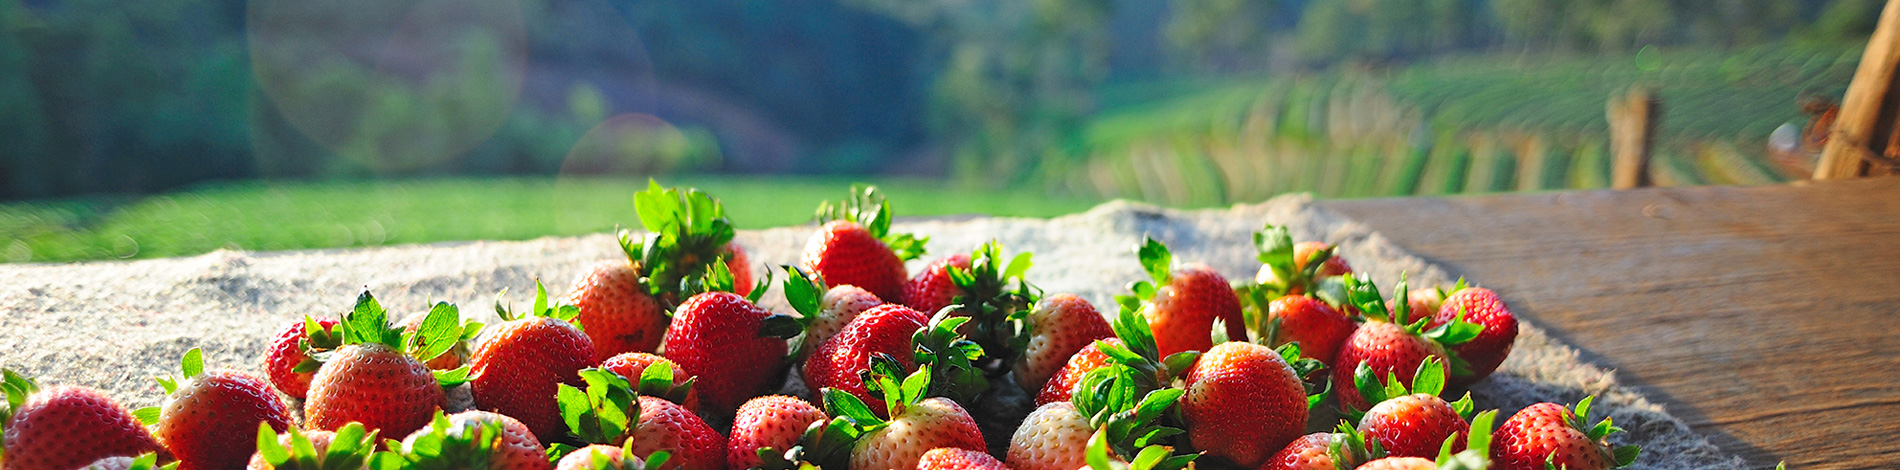 NC Strawberry Farm information and Strawberry Education Information